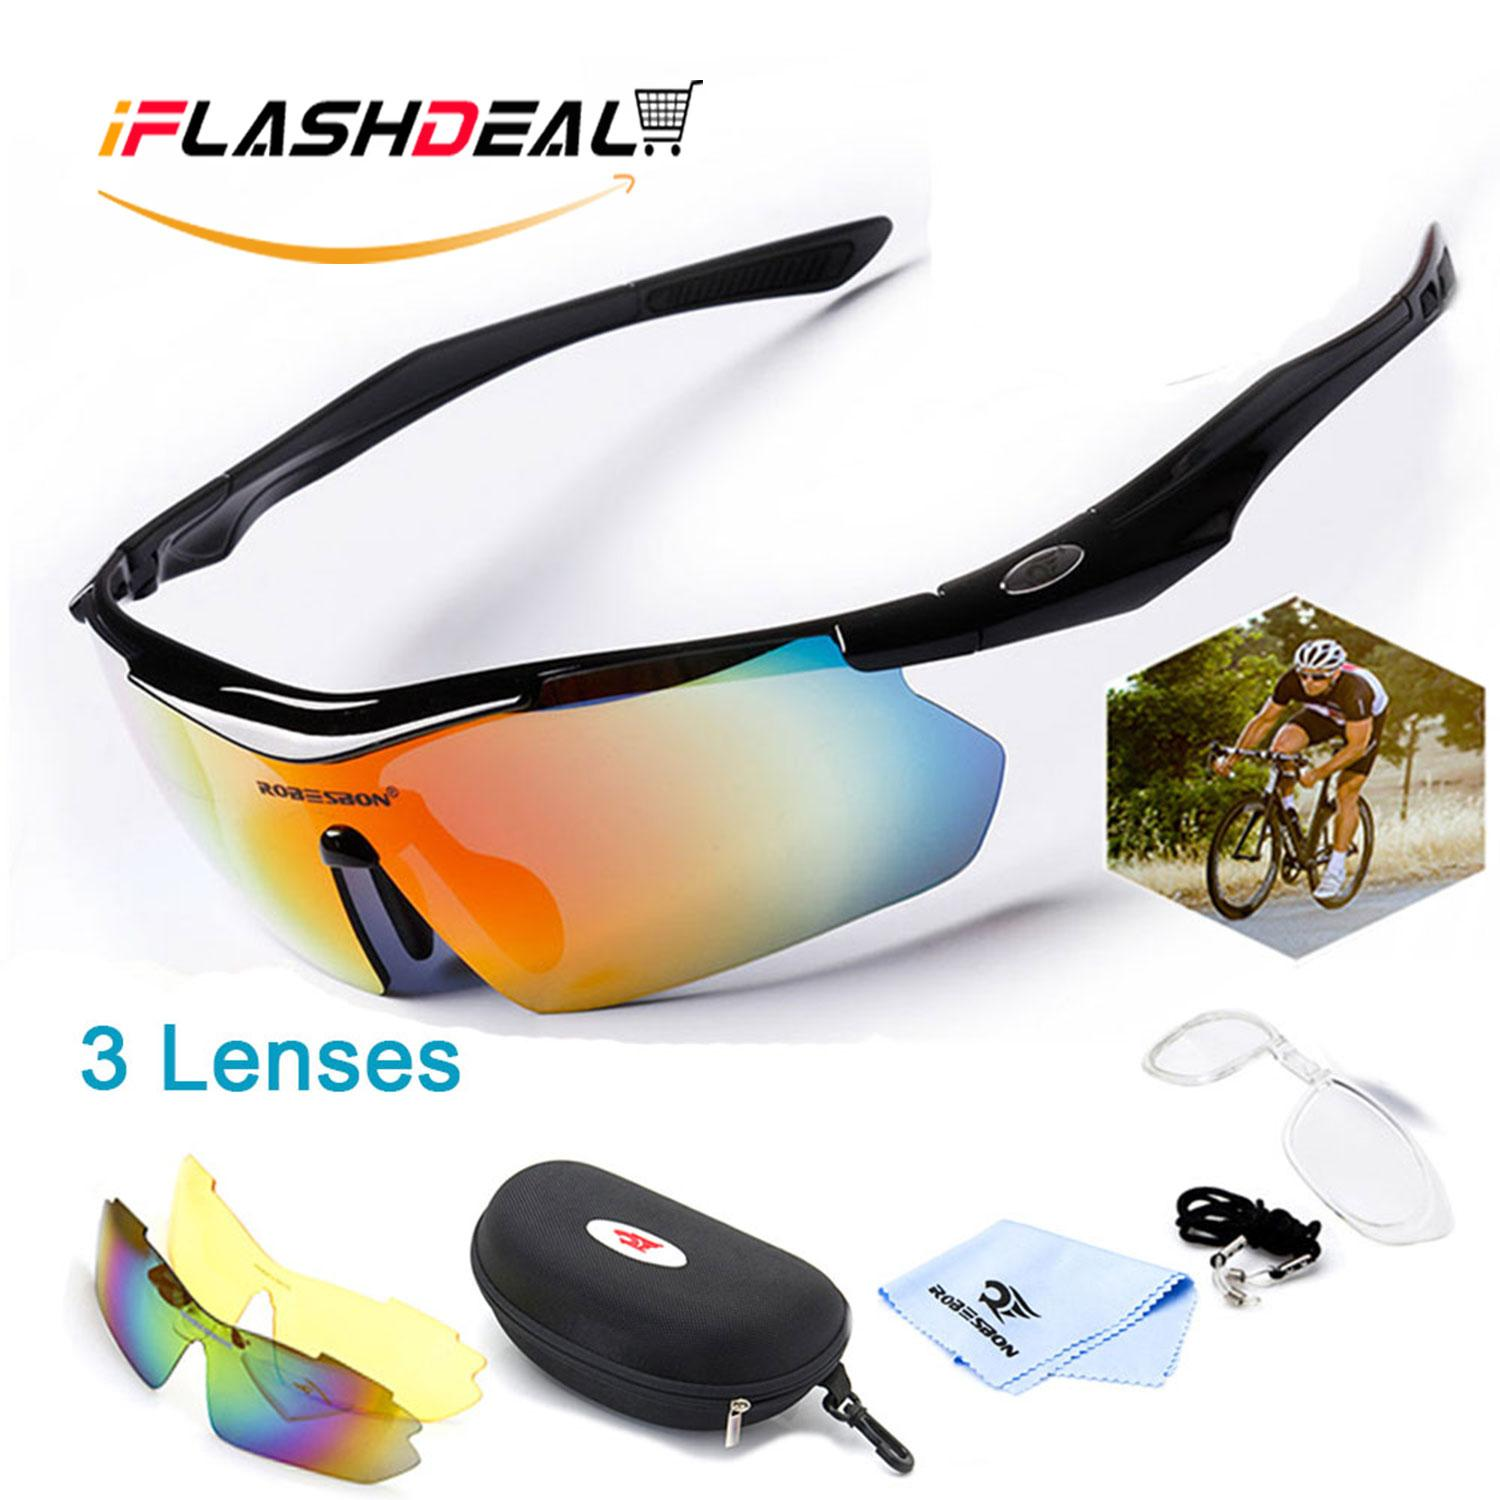 iFlashDeal Men Sports Sunglasses Polarized Outdoor Sport Driving Male Women Sun Glasses Cycling Riding Running Glasses